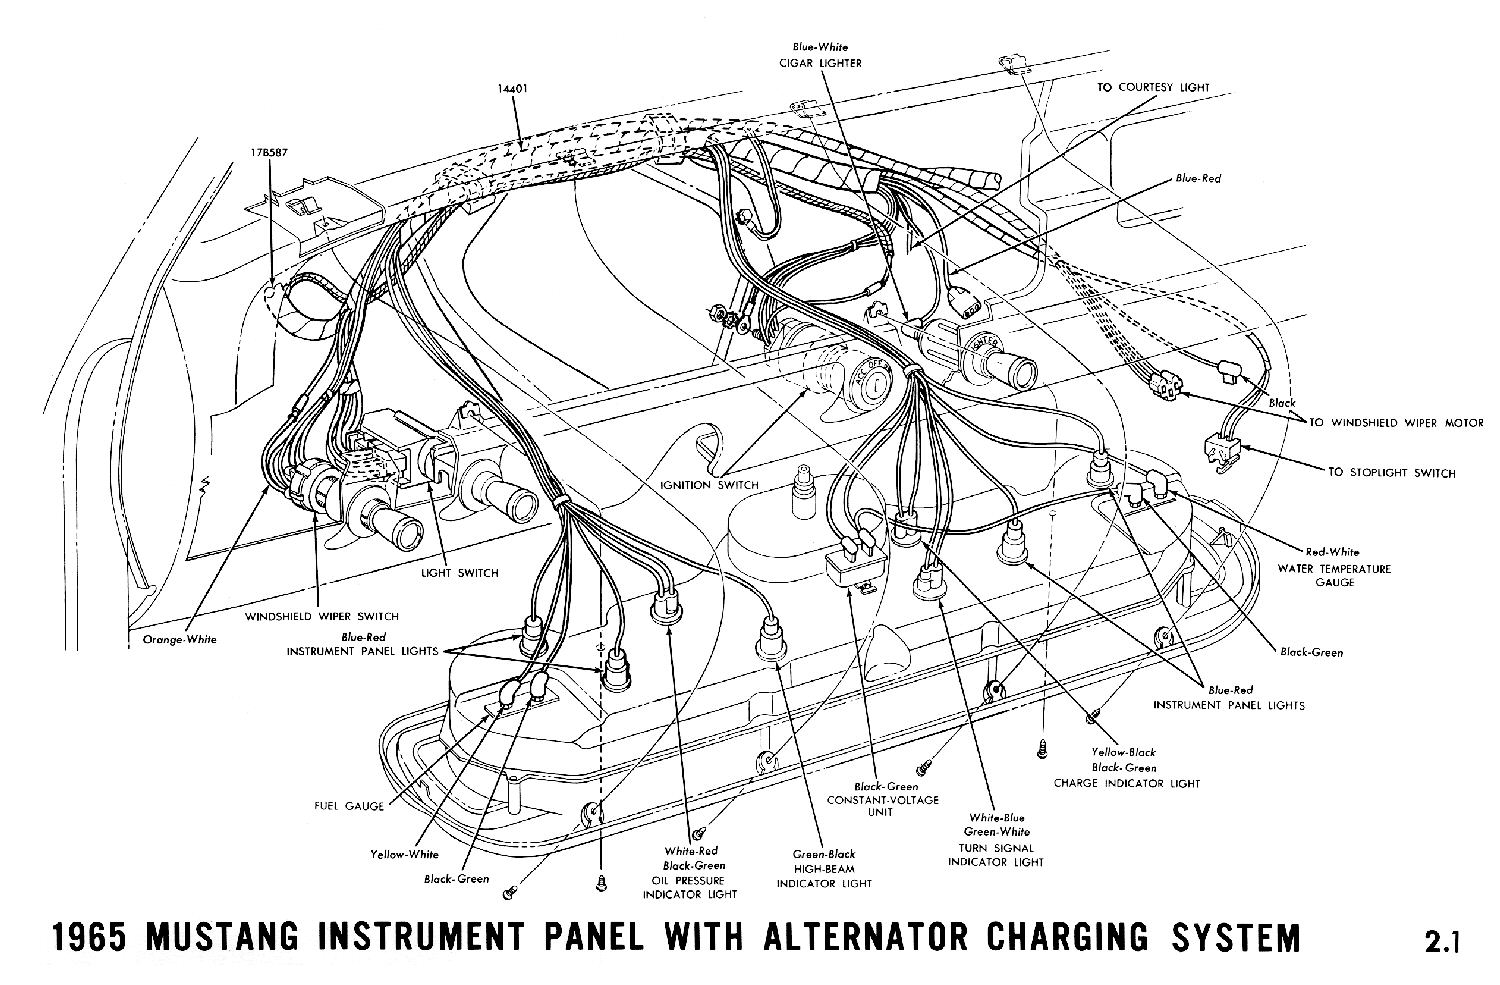 hight resolution of 65 mustang wiper wiring diagram detailed schematics diagram rh jppastryarts com 68 chevelle wiring diagram 64